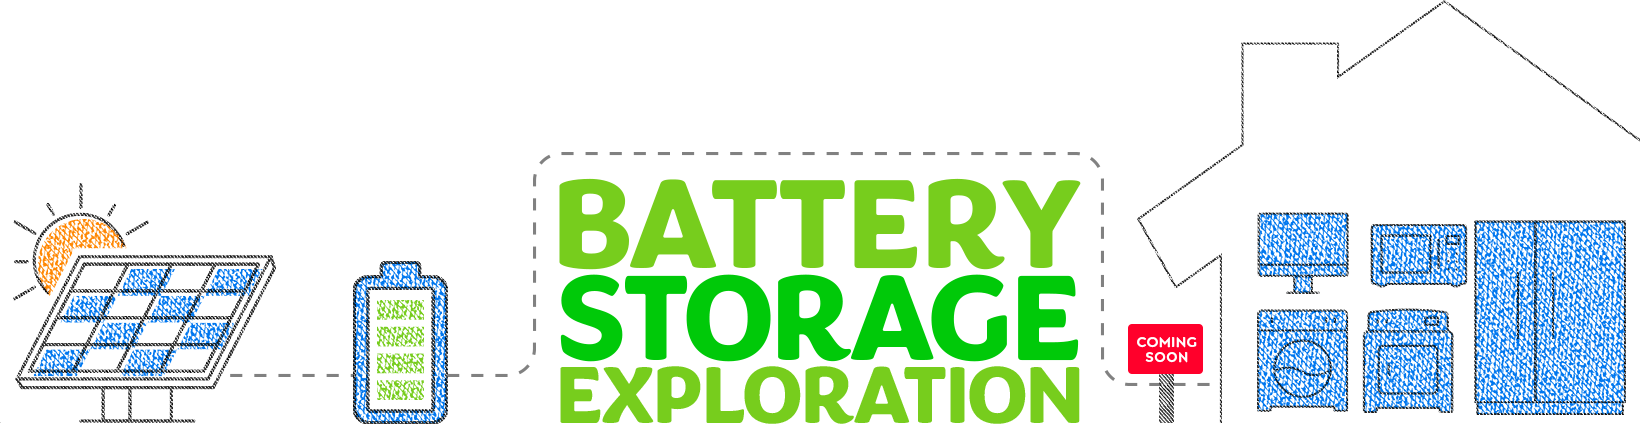 Battery storage exploration.